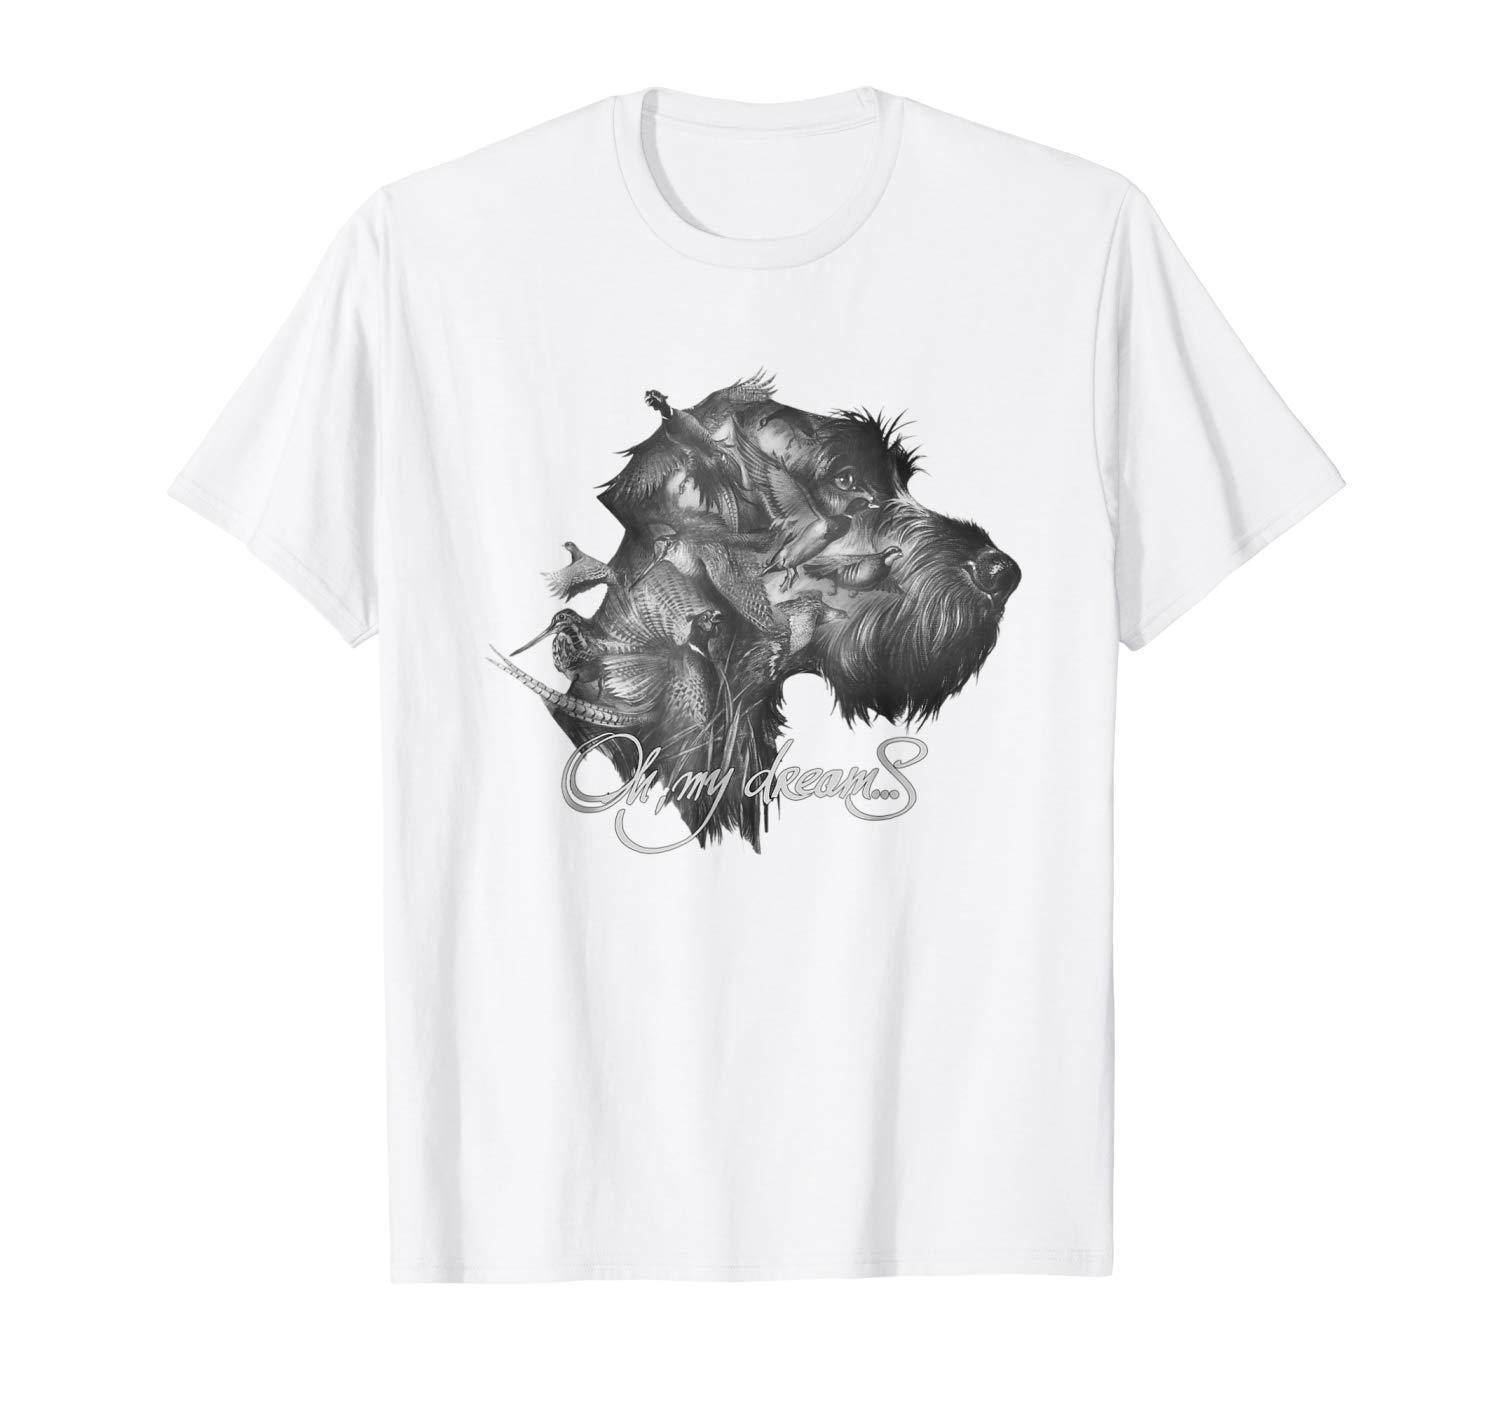 Drahthaar Oh, My Dreams <font><b>Dog</b></font> <font><b>art</b></font> Graphic White T-shirt Cool Casual pride t shirt men Unisex New Fashion <font><b>tshirt</b></font> free shipping image